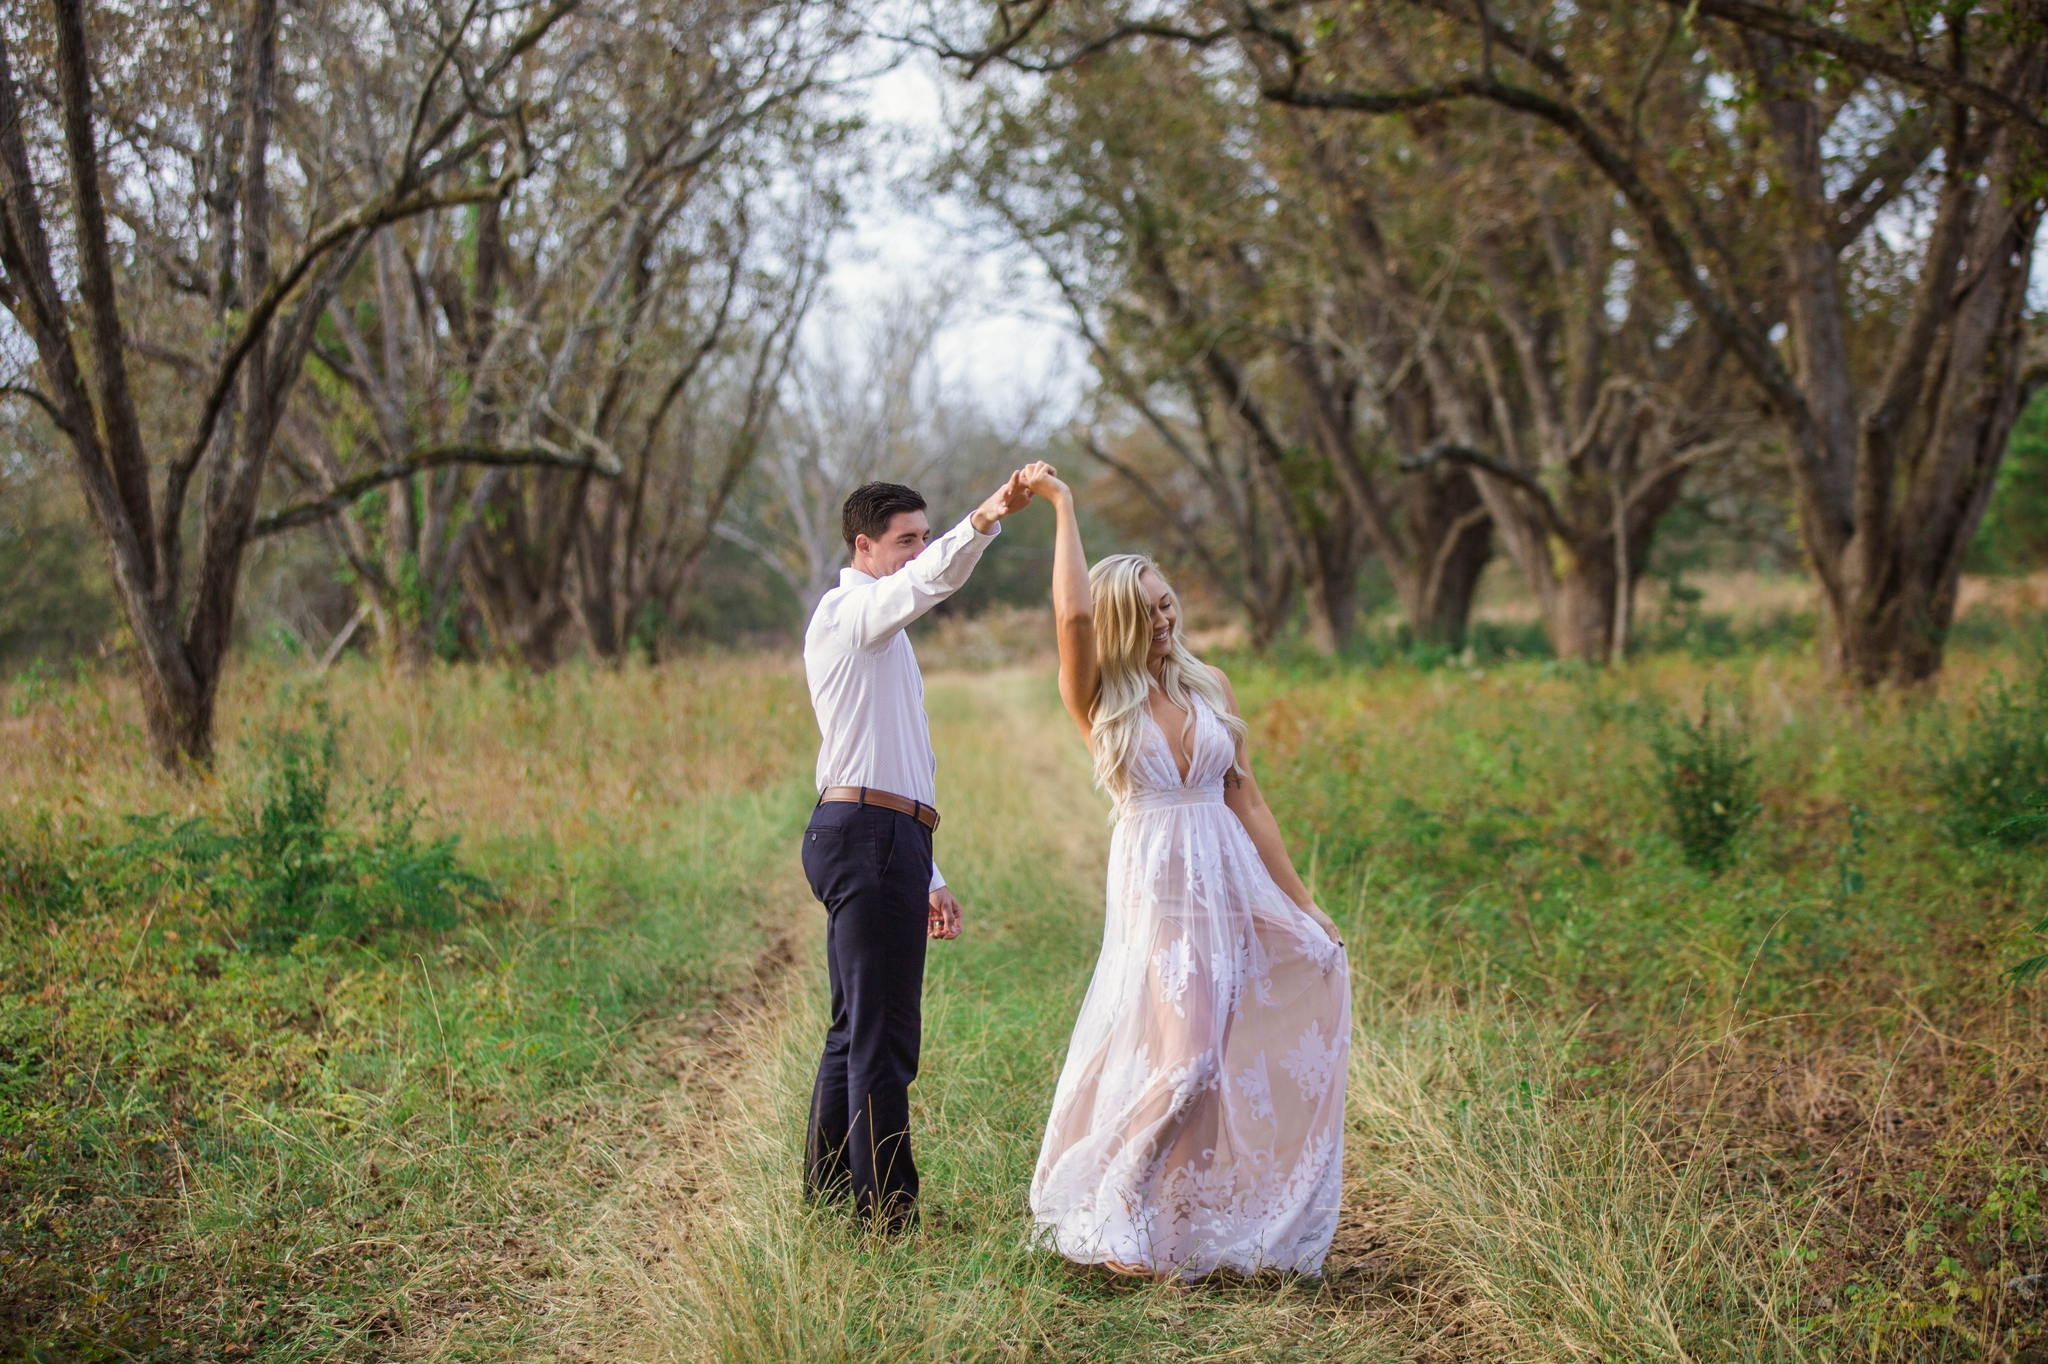 Engagement+Photography+Session+in+a+cornfield+in+fayetteville+north+Carolina+-+Johanna+DYe+Photographer+6.jpg